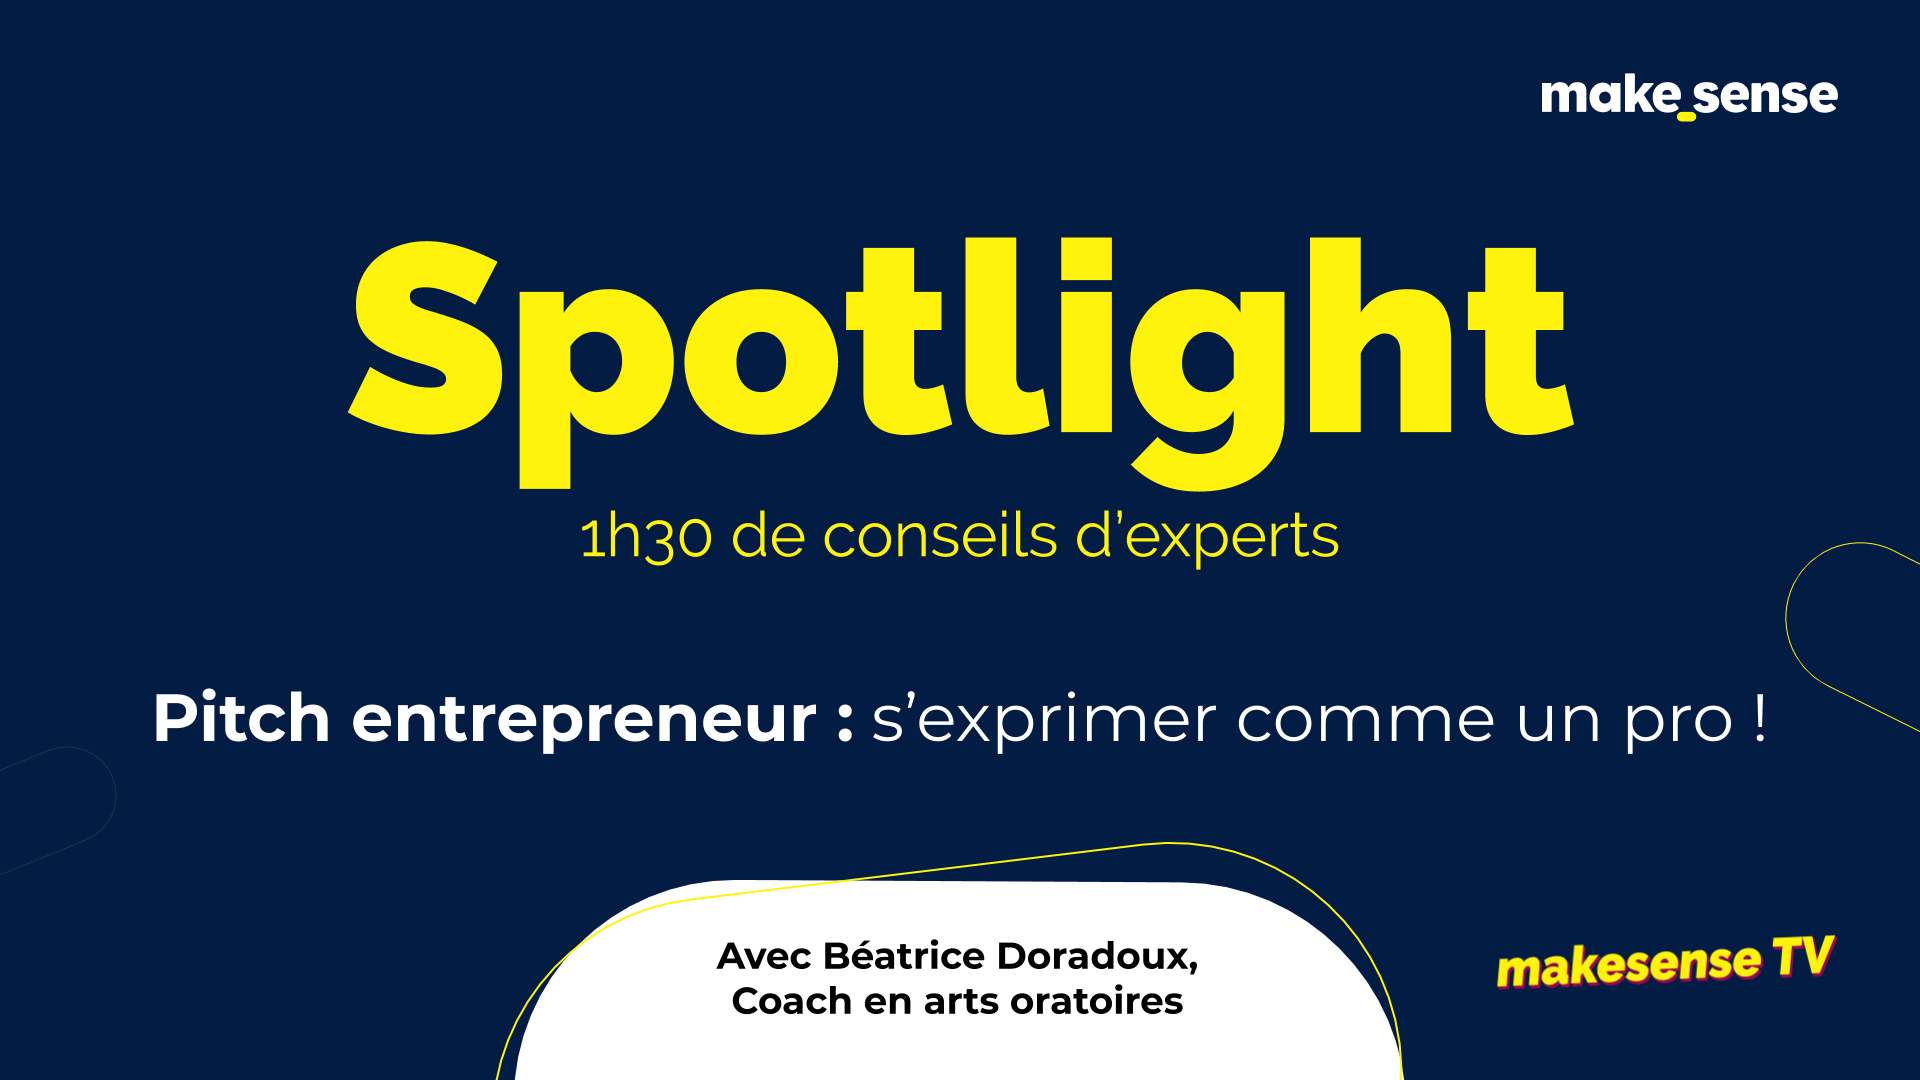 [Spotlight] Prendre la parole, l'art du pitch entrepreneur !